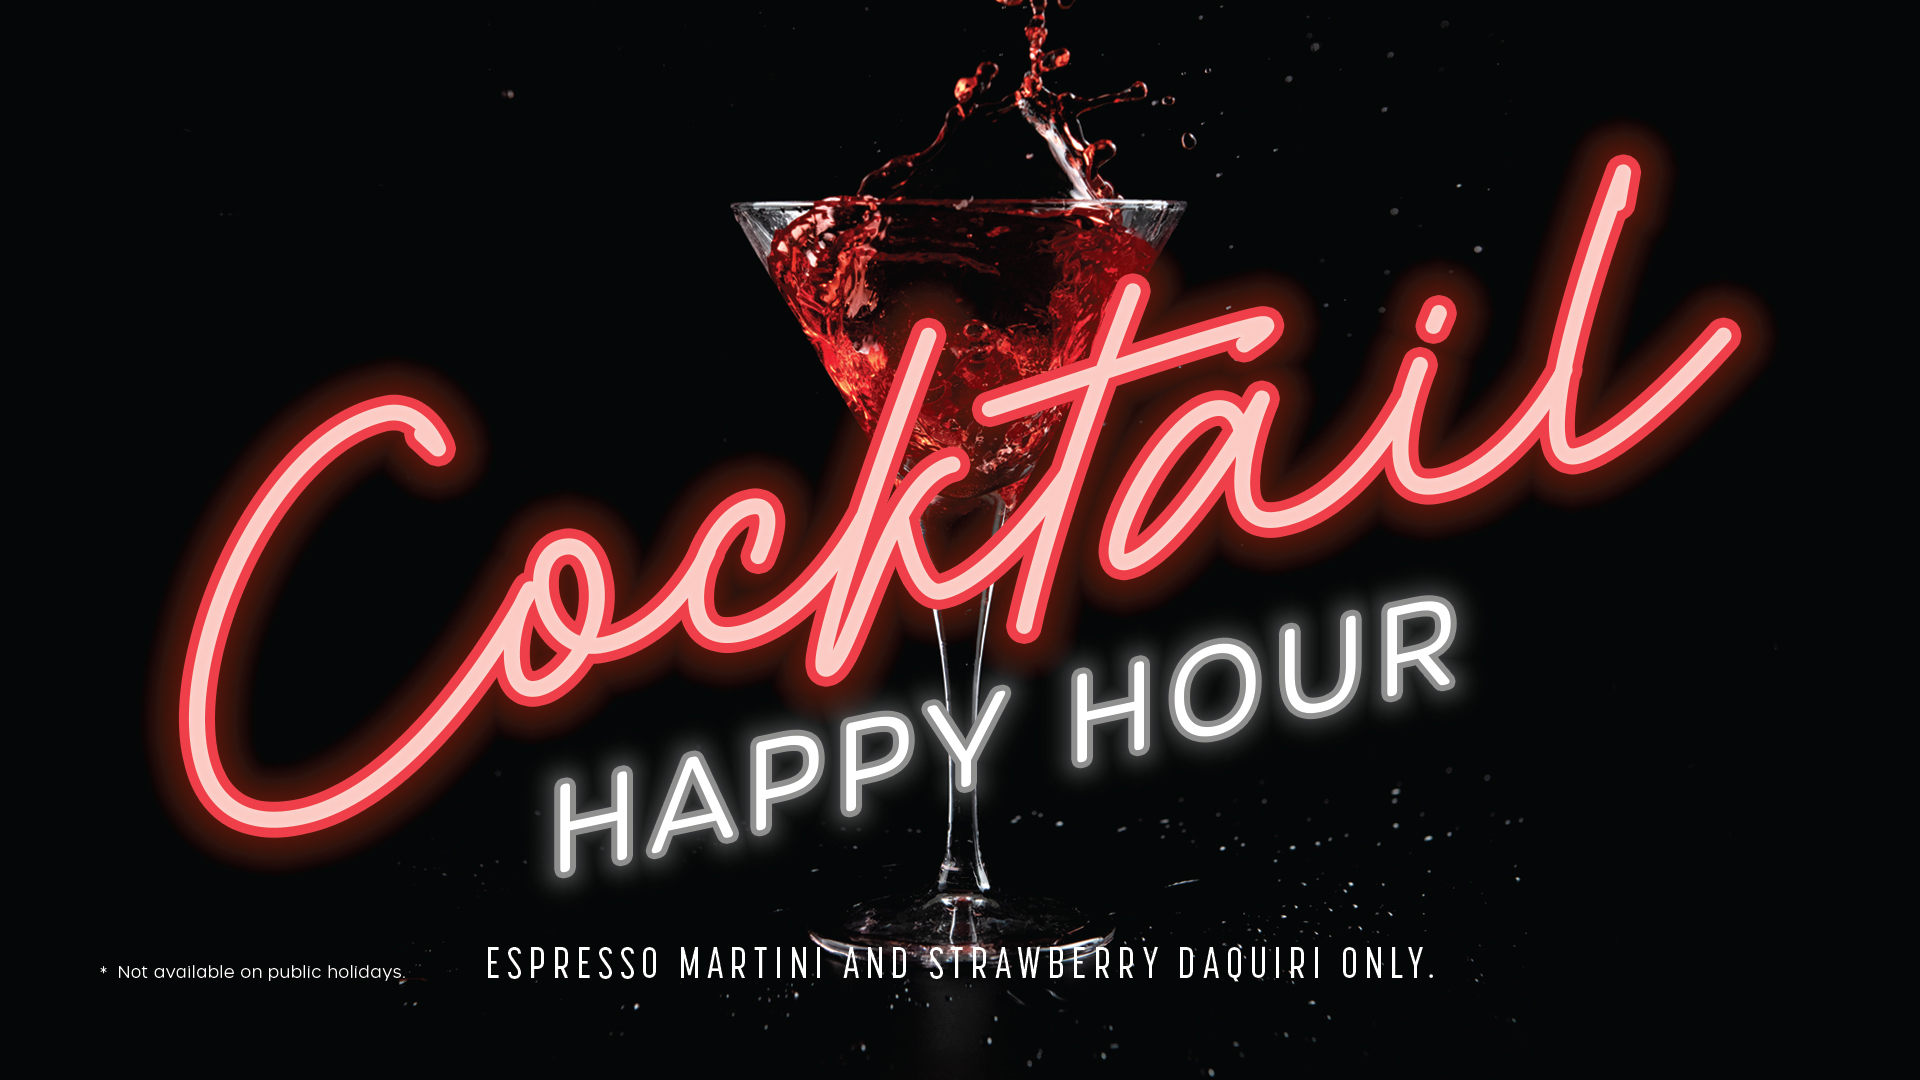 Cocktail Happy Hour for website graphic